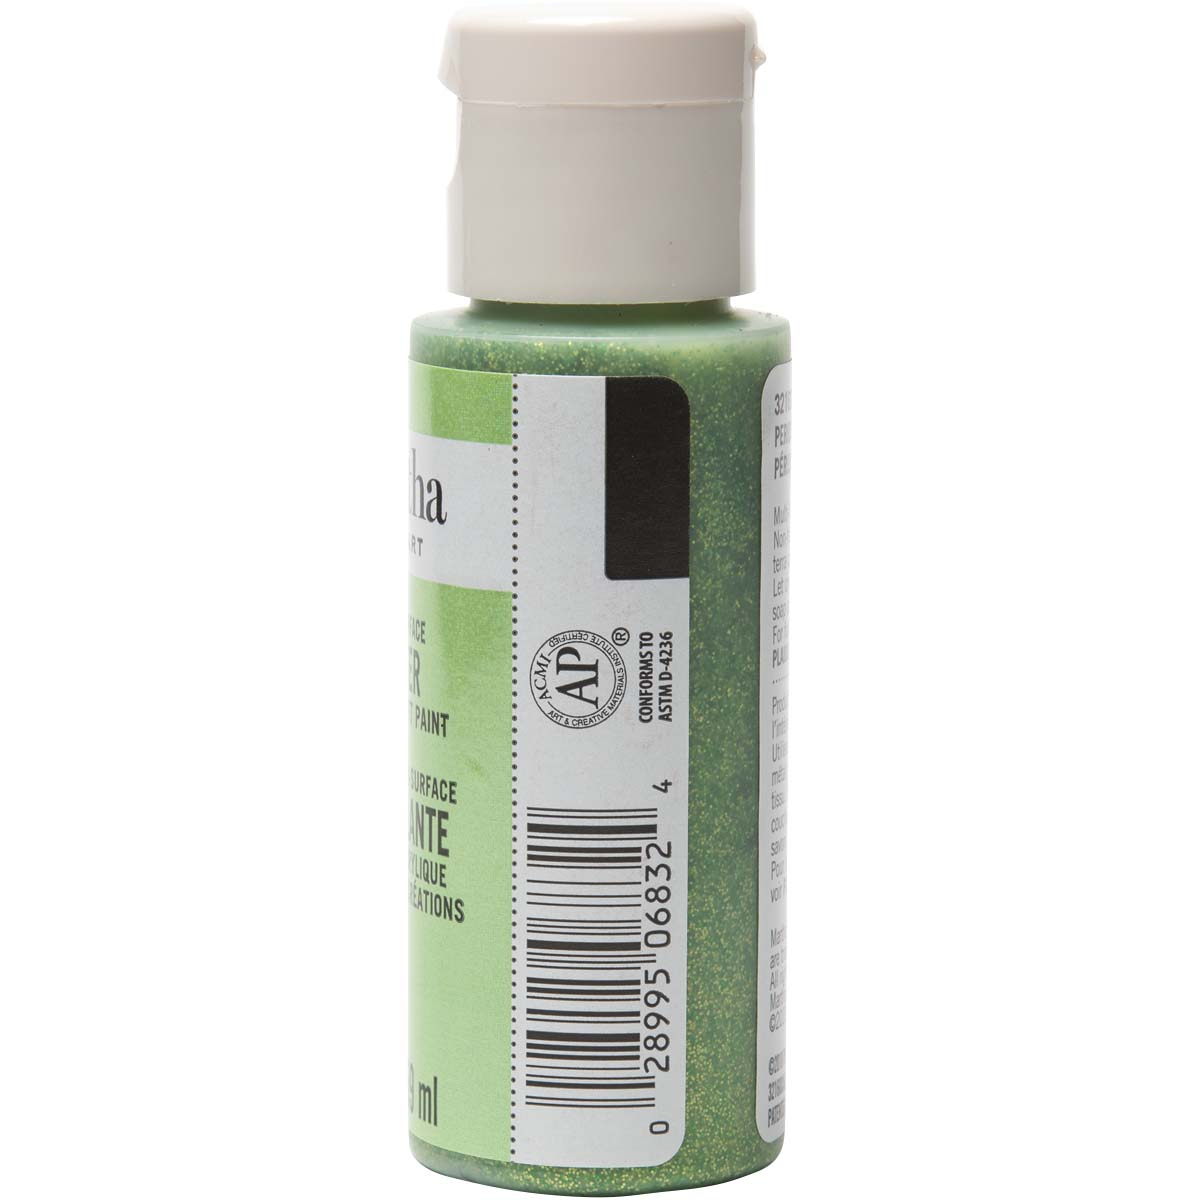 Martha Stewart ® Multi-Surface Glitter Acrylic Craft Paint - Peridot, 2 oz.